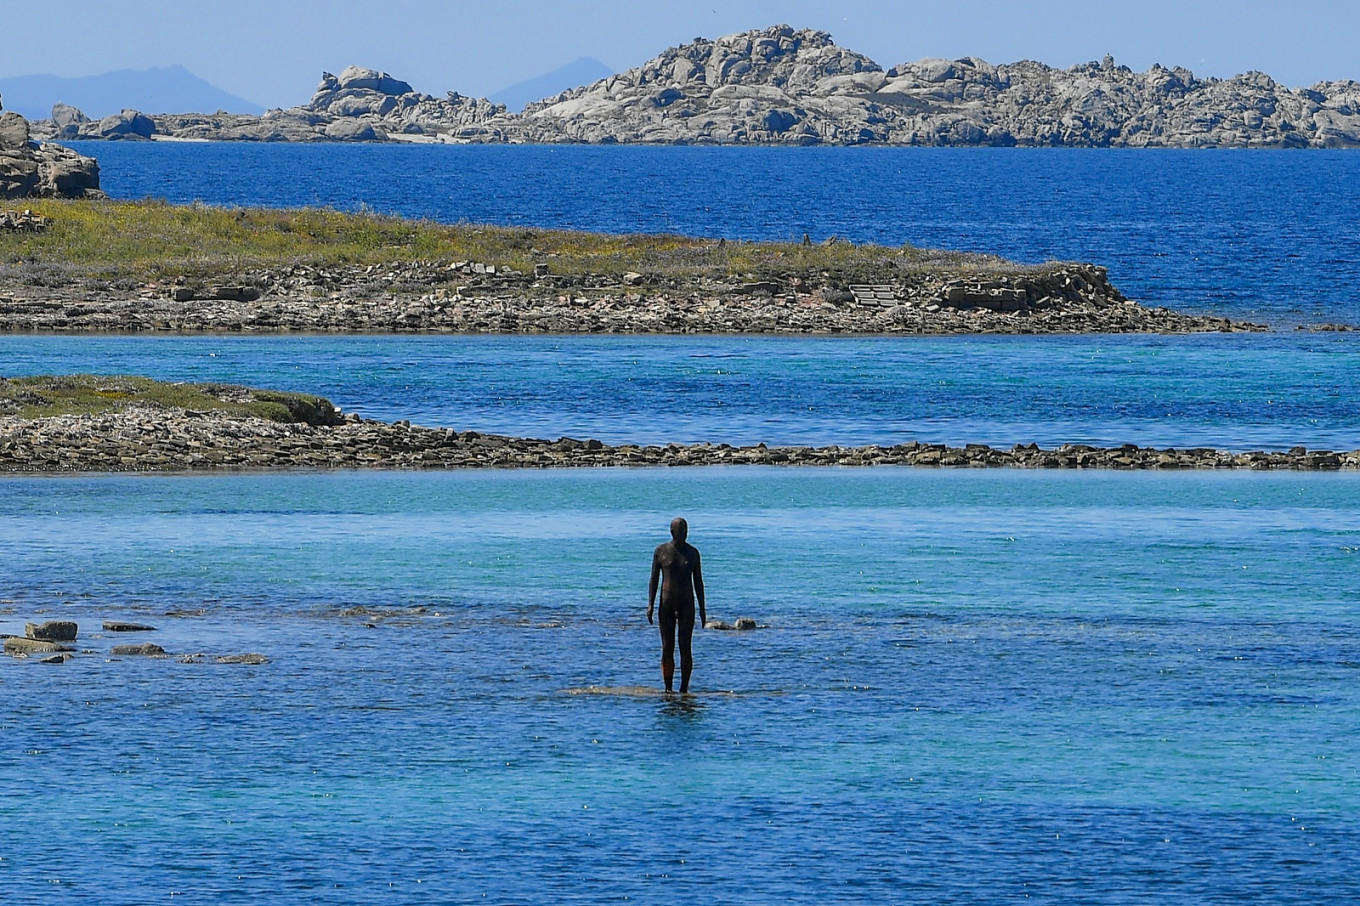 The statue '6 times left' by renowned British artist Antony Gormley, and part of his exhibition 'Sight' stands in the sea at the entrance od the port of the island of Delos, a UNESCO World Heritage Site, on May 3, 2019.